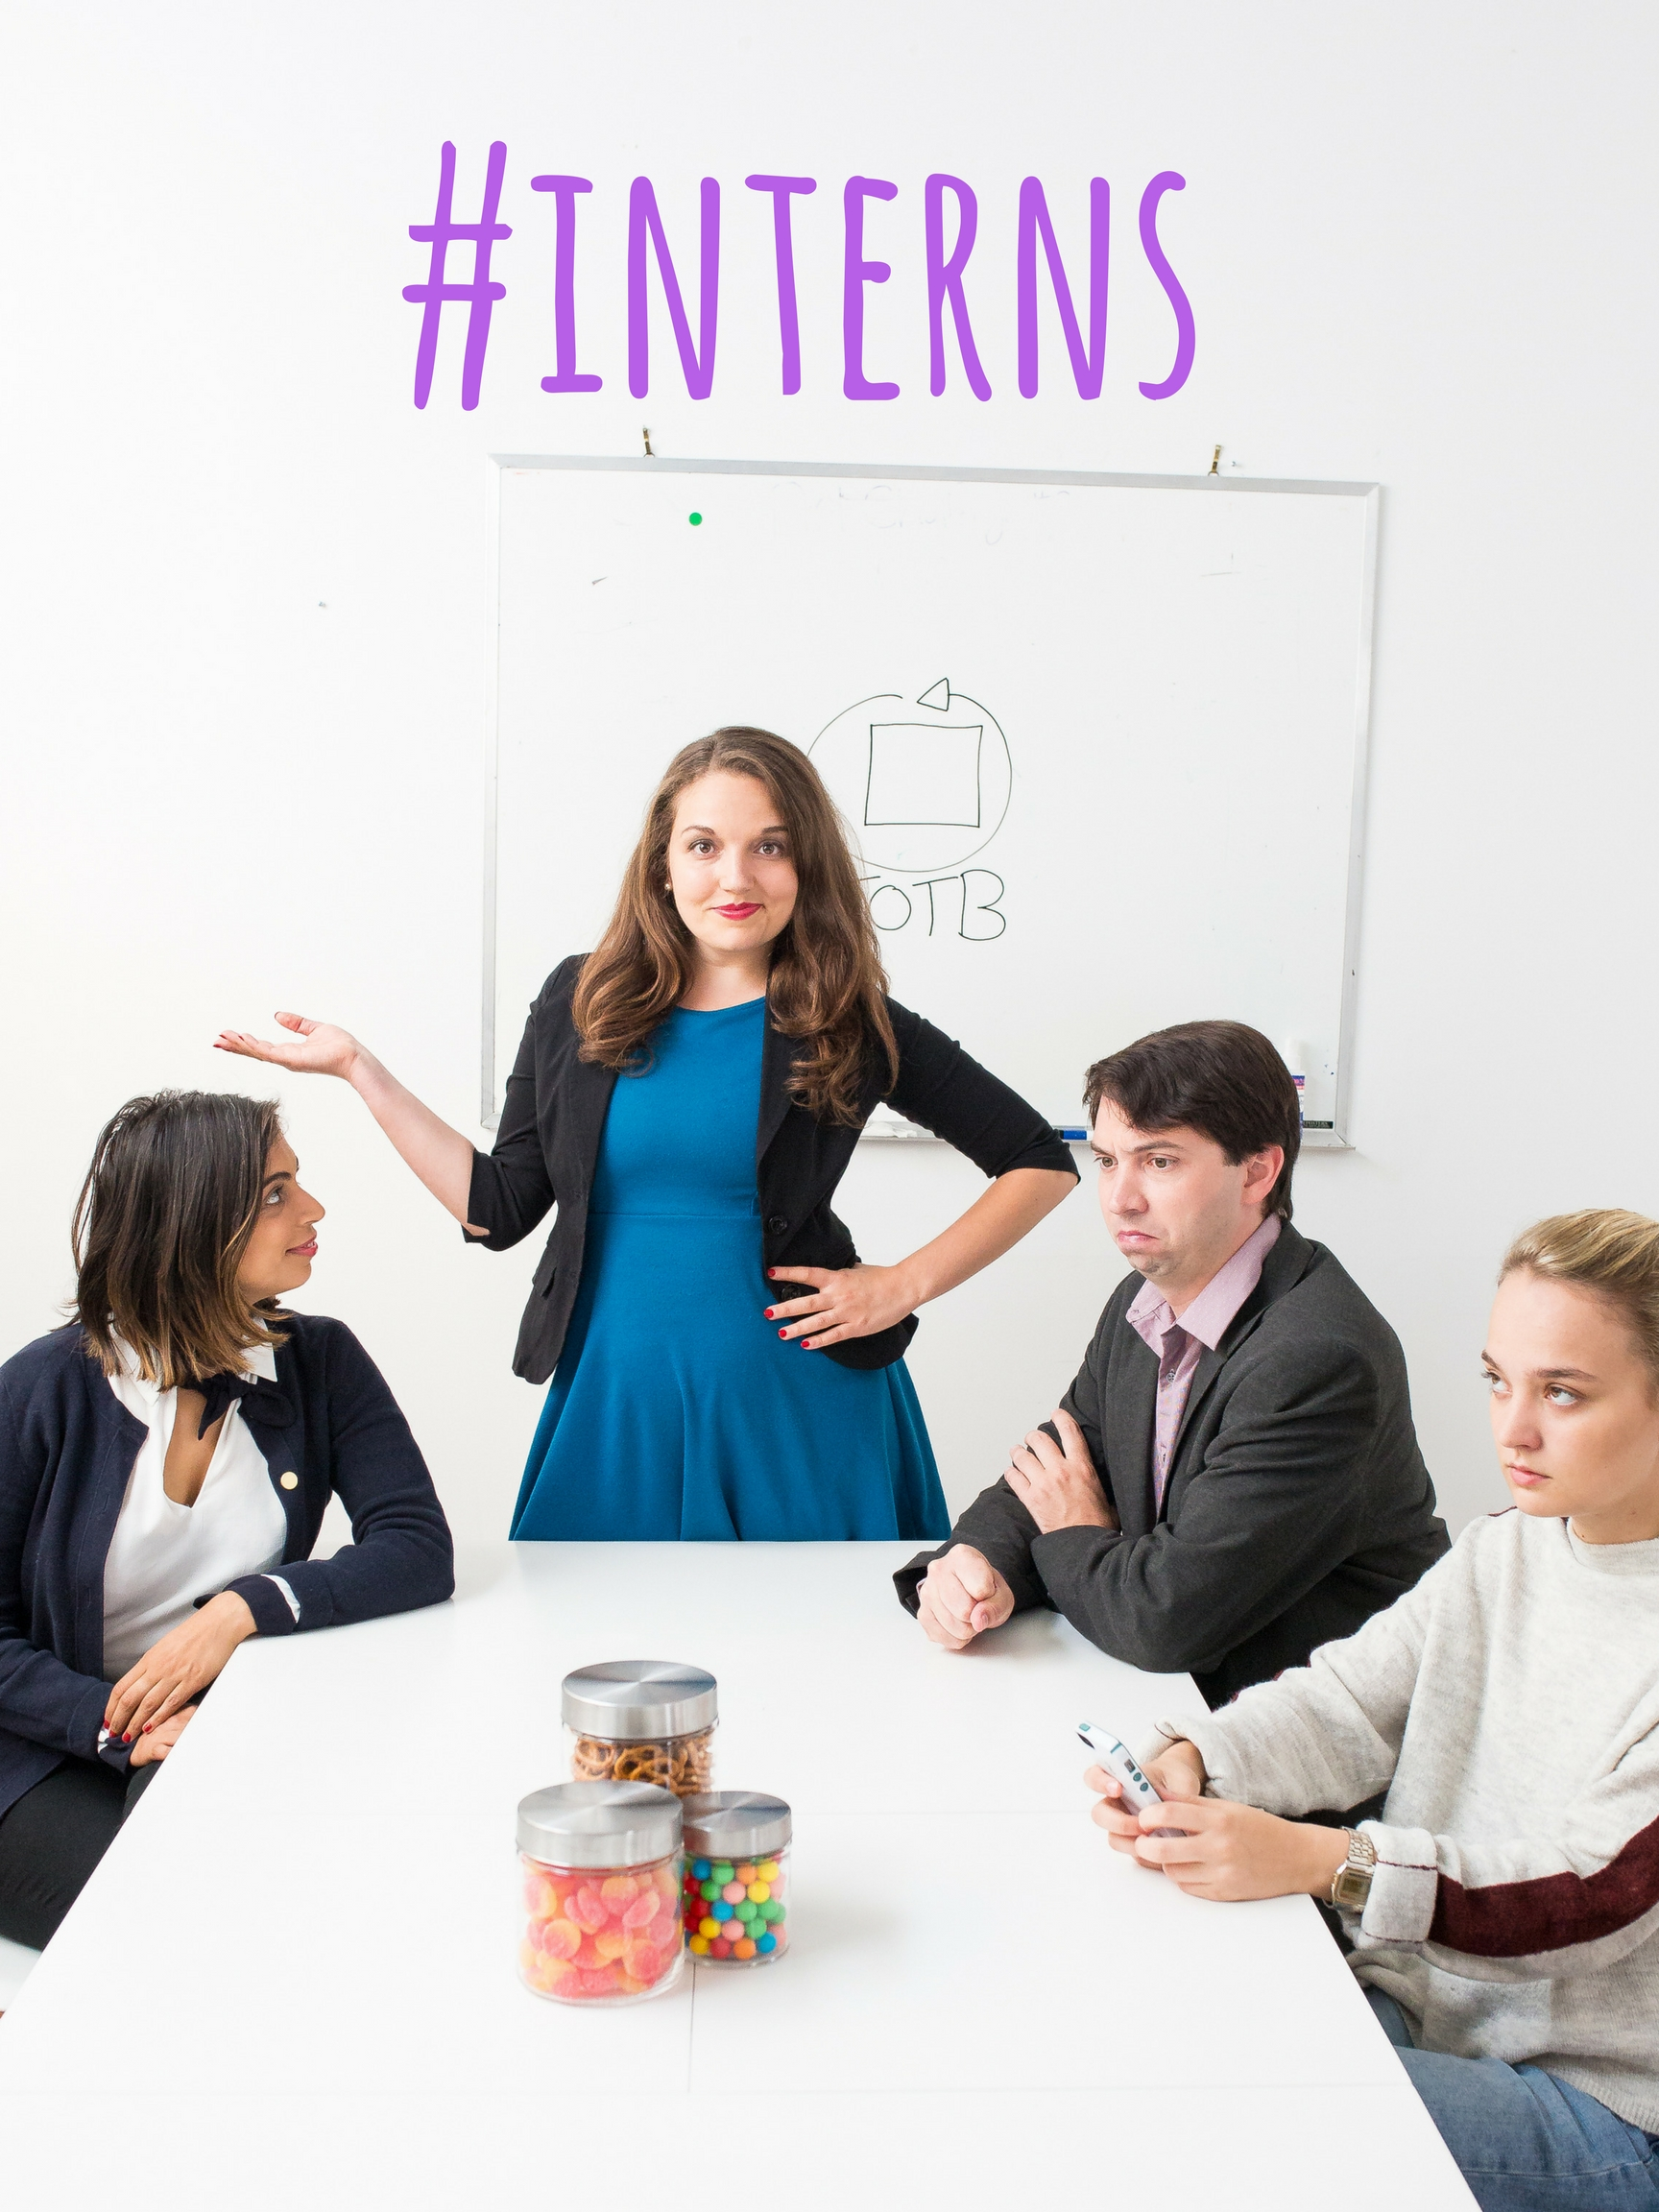 #interns poster feels fave (1).jpg